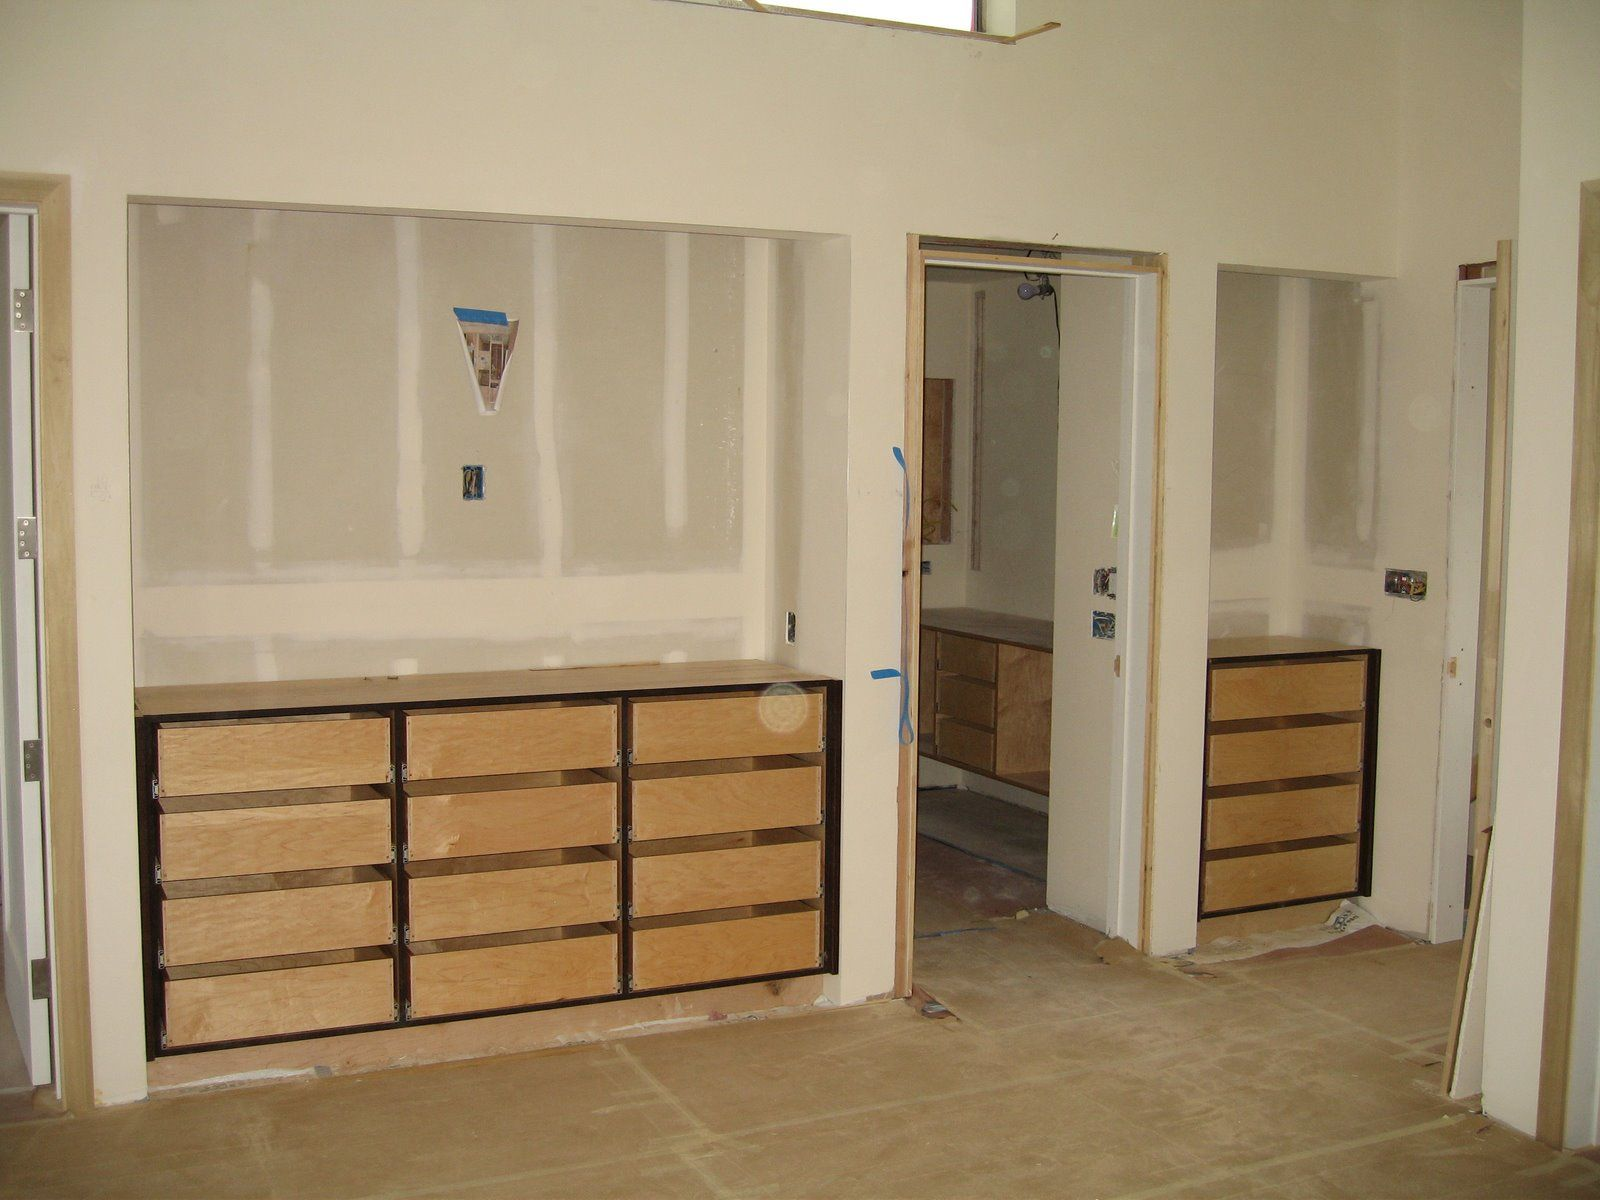 Bedroom Built In Closets Optional Built Ins For Tonys Closet At Raised Dresser Height C C